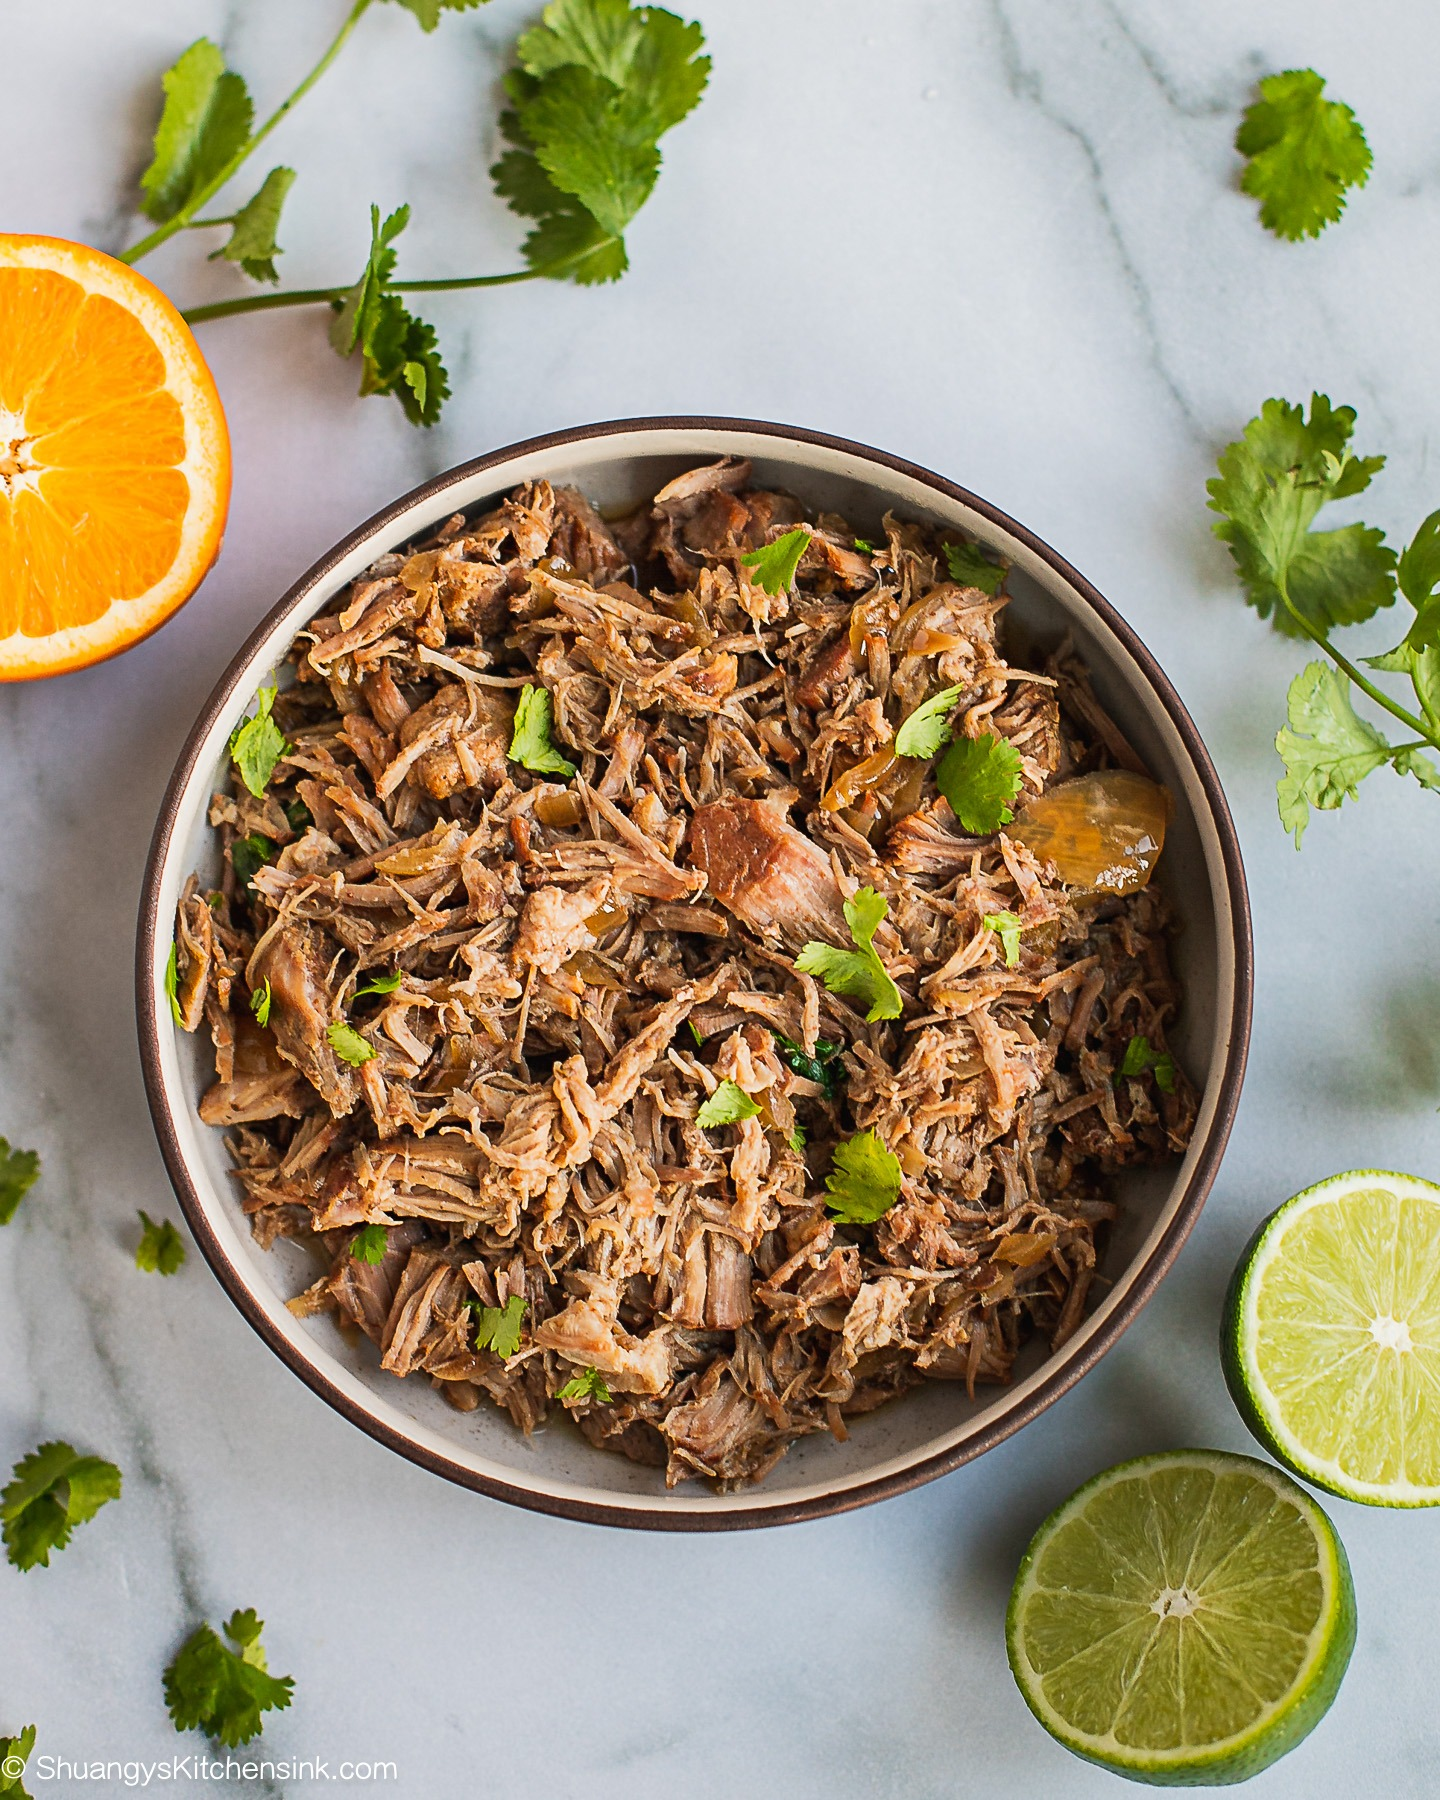 There is a bowl of pulled pork topped with cilantro. There are lime and orange halfs on the table as well.